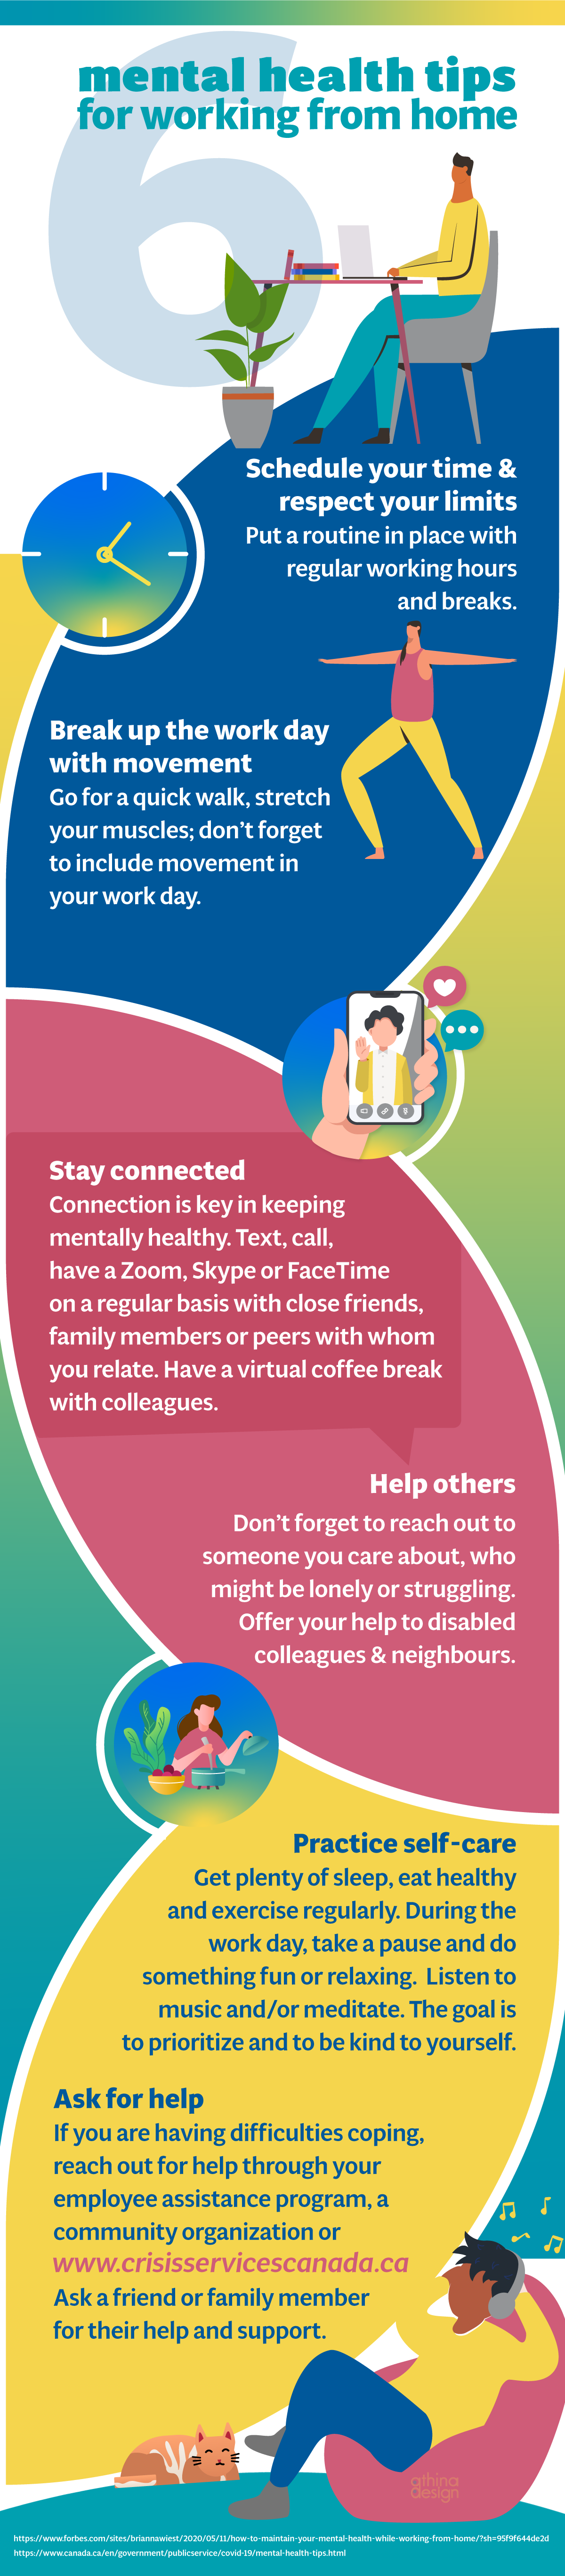 six-mental-health-tips-for-working-from-home